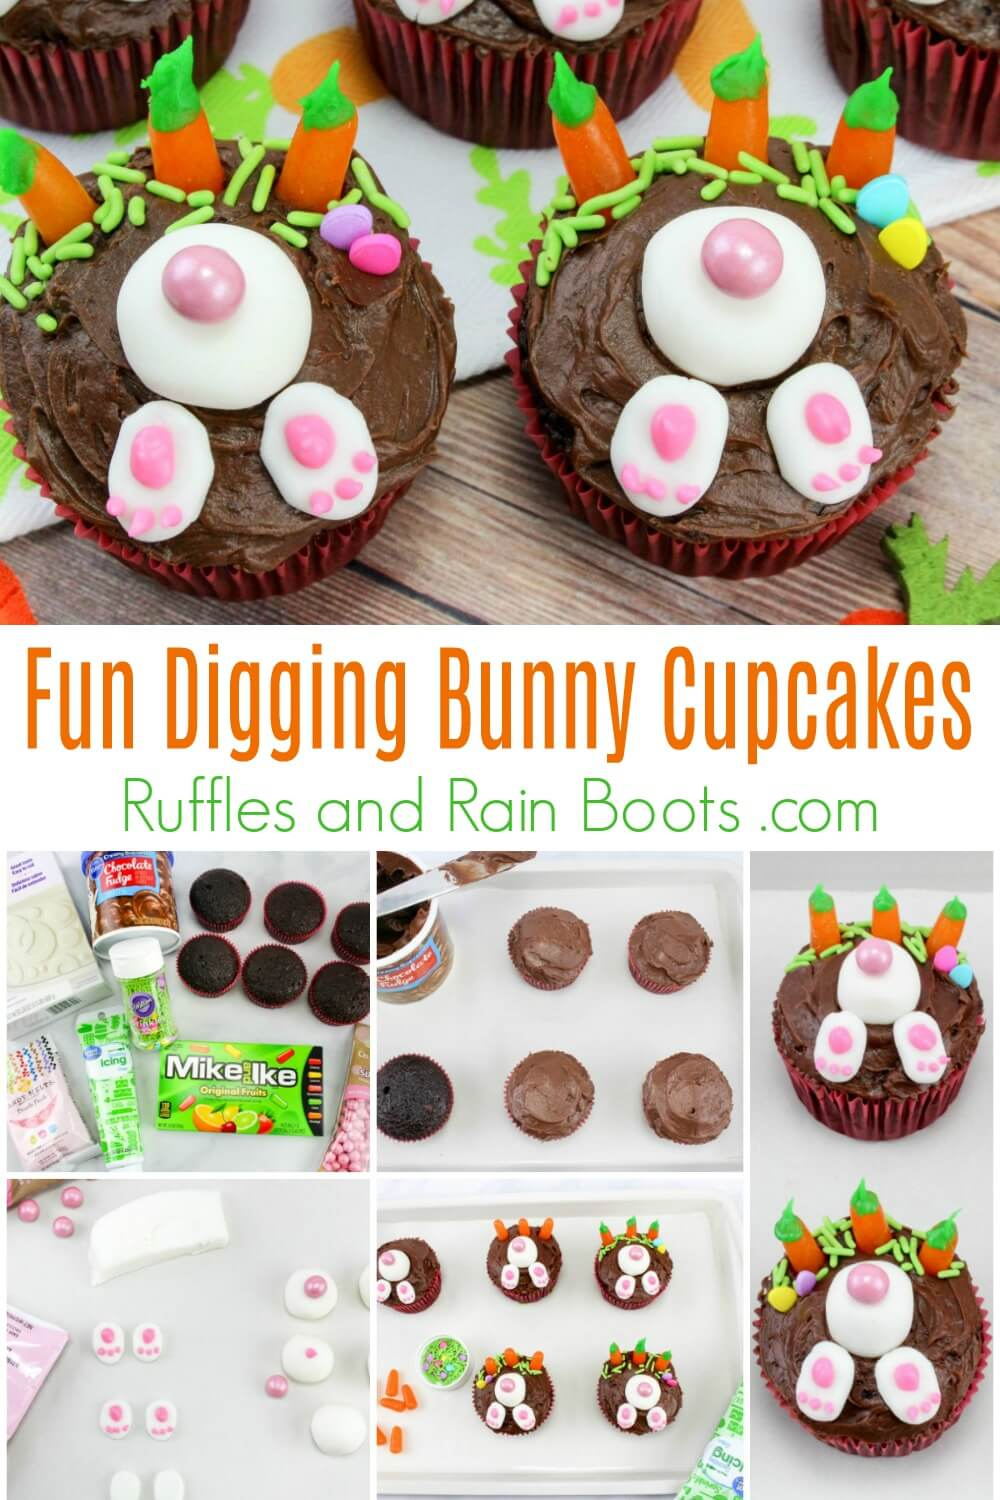 photo collage of how to make adorable bunny cupcakes for Easter with text which reads Fun Digging Bunny Cupcakes